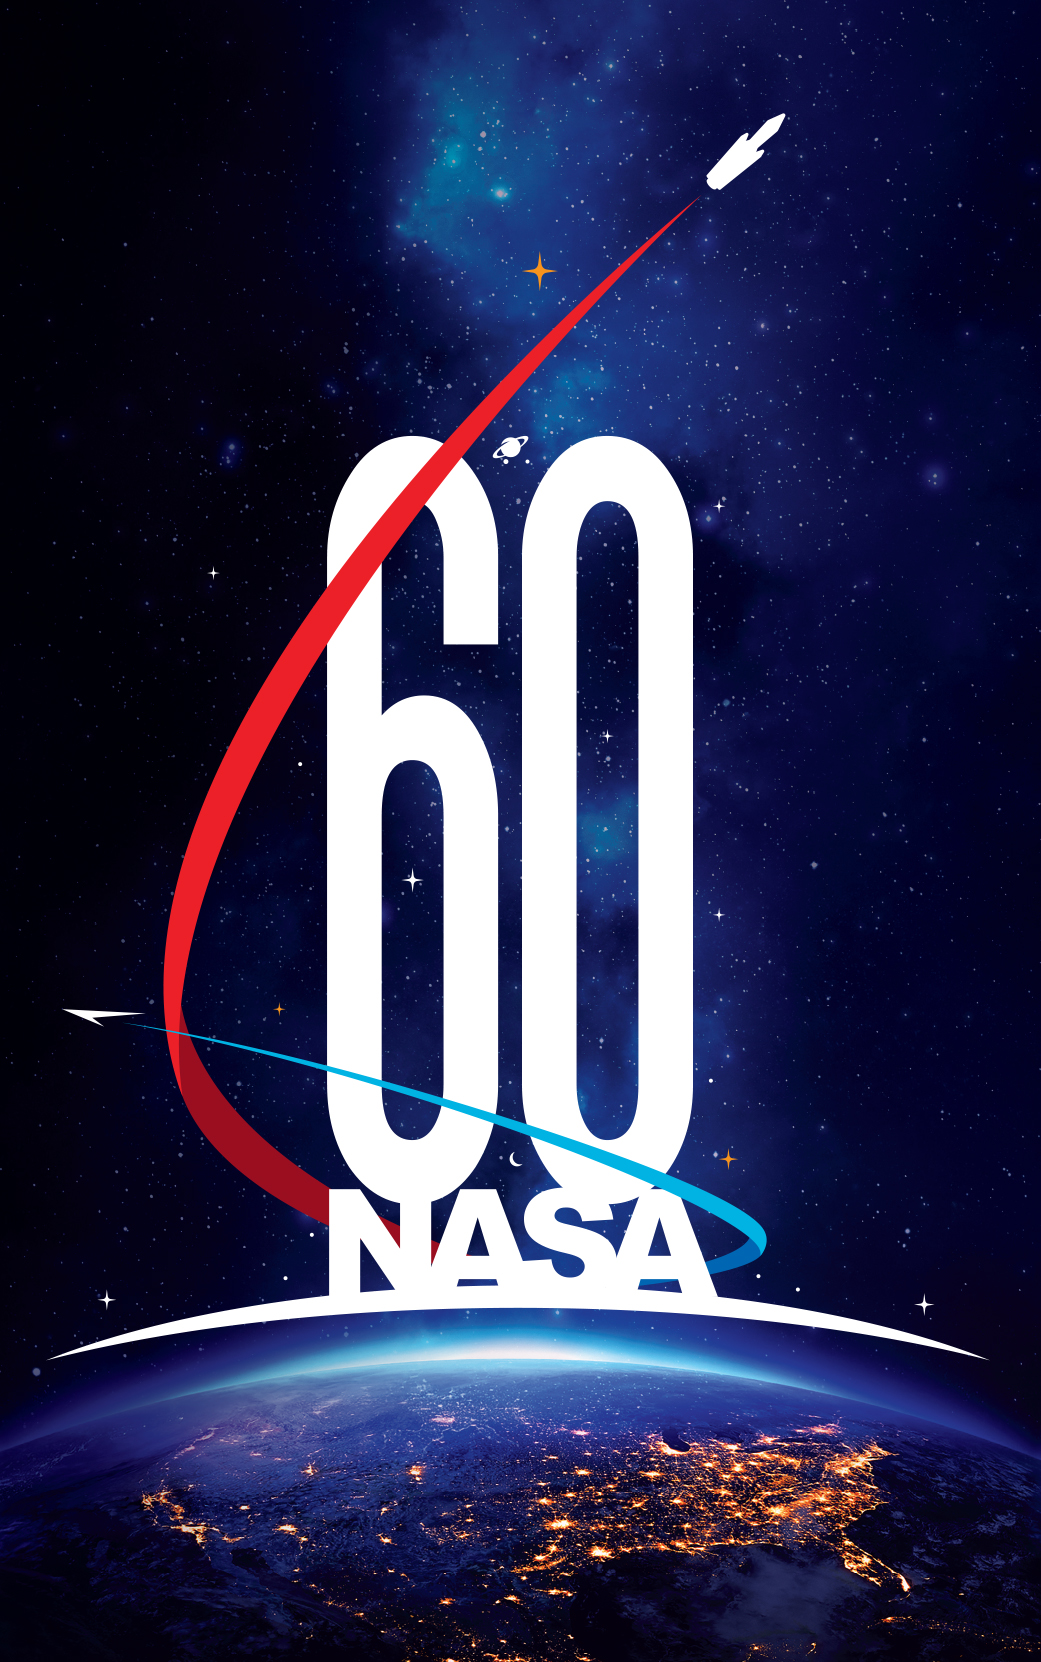 https://www.nasa.gov/sites/default/files/thumbnails/image/nasa_60th_logo.jpg